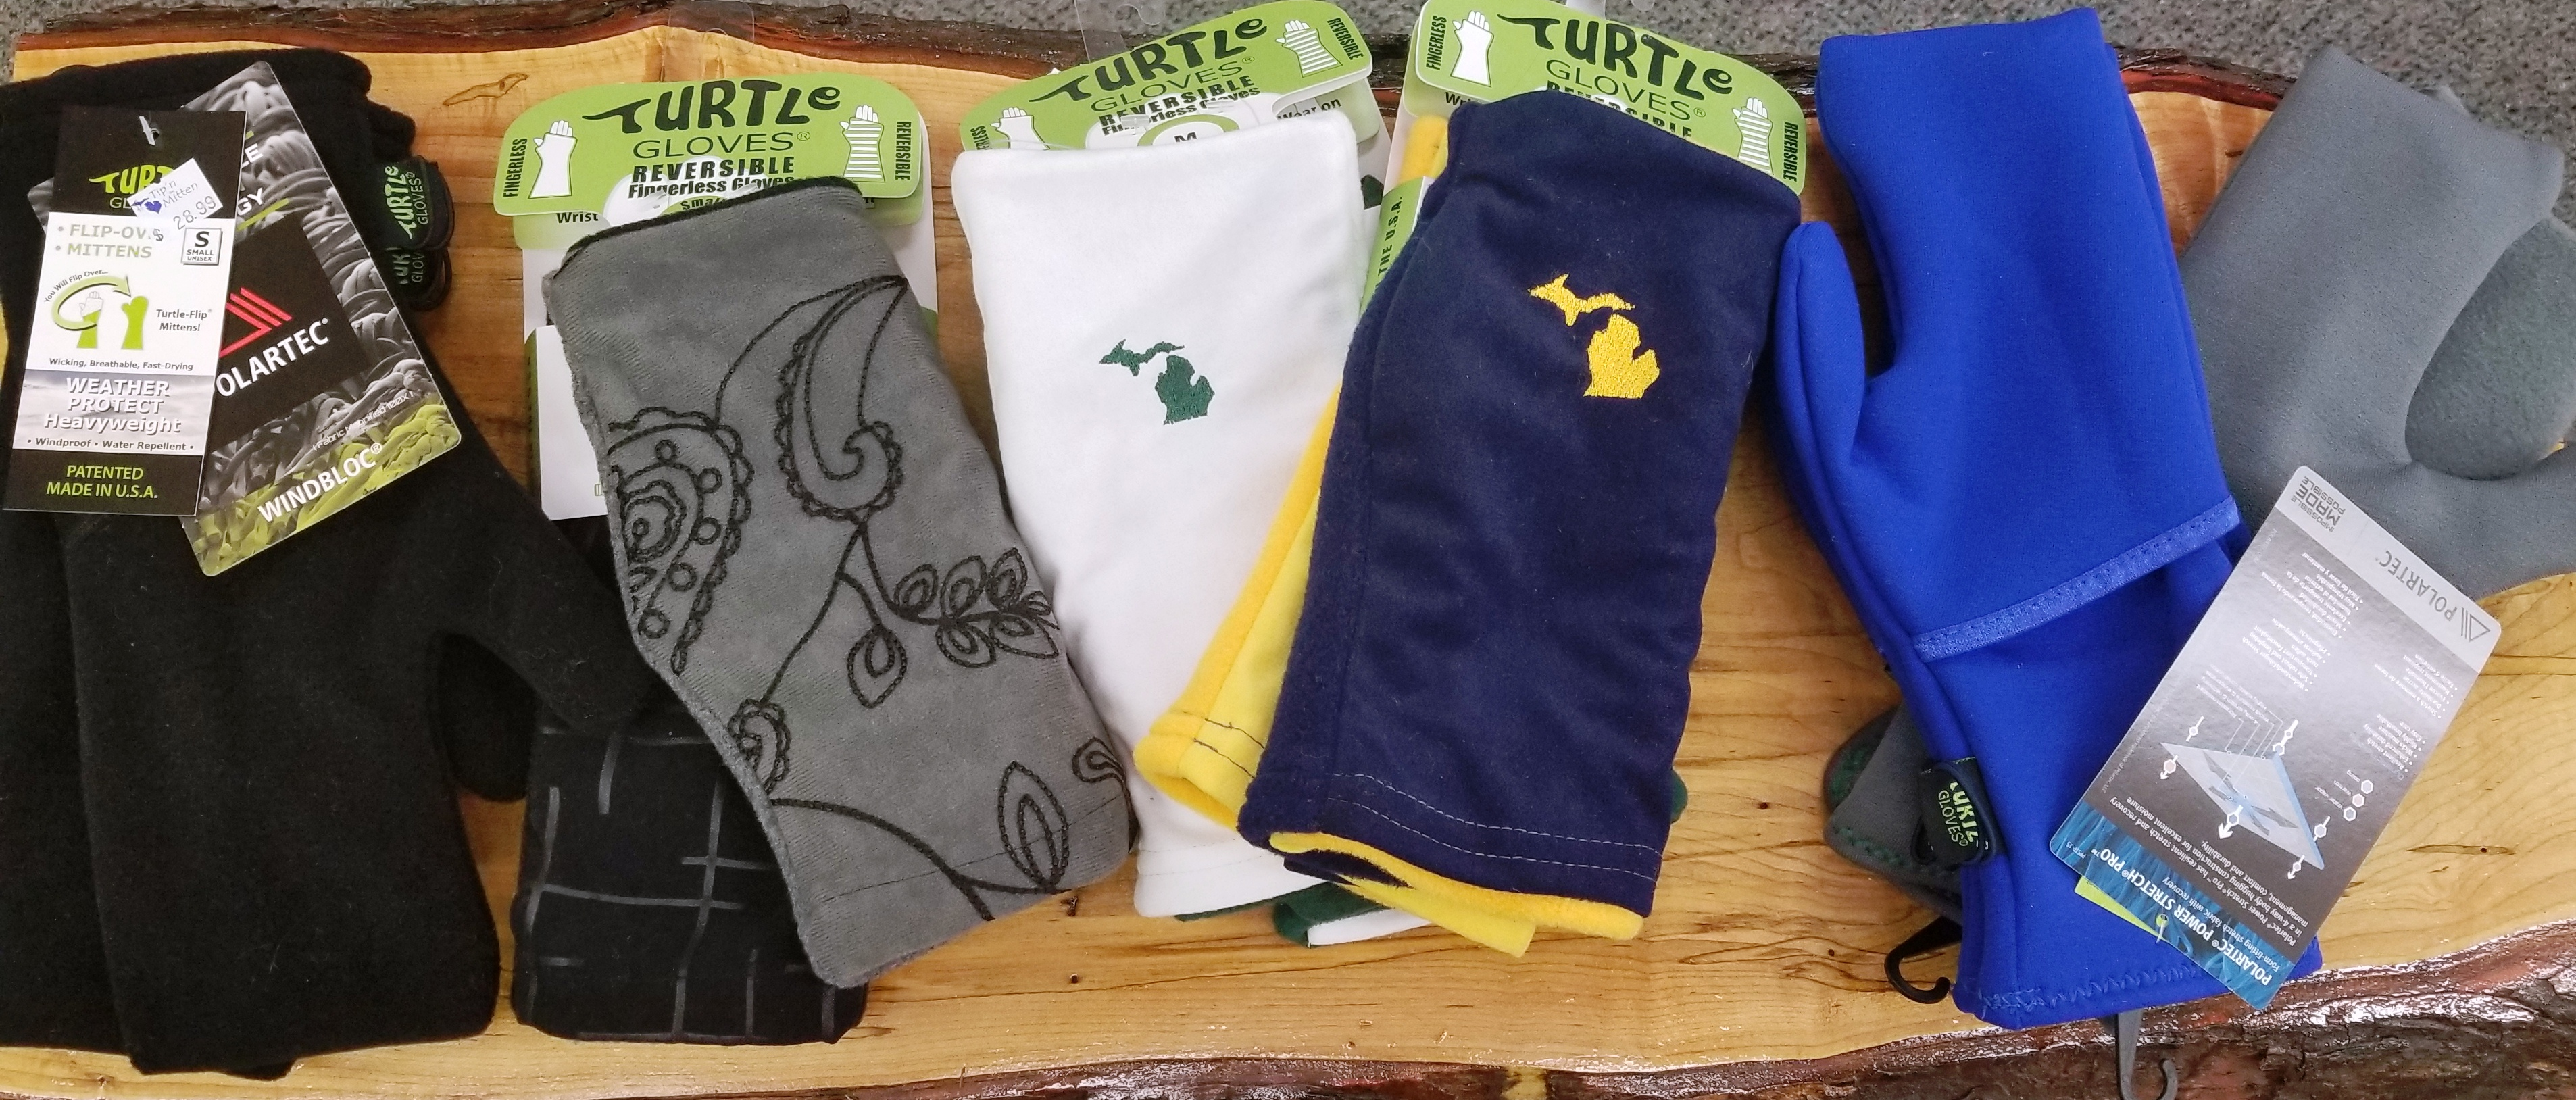 TURTLE GLOVES – FEATURED VENDOR AT TIP'N THE MITTEN!